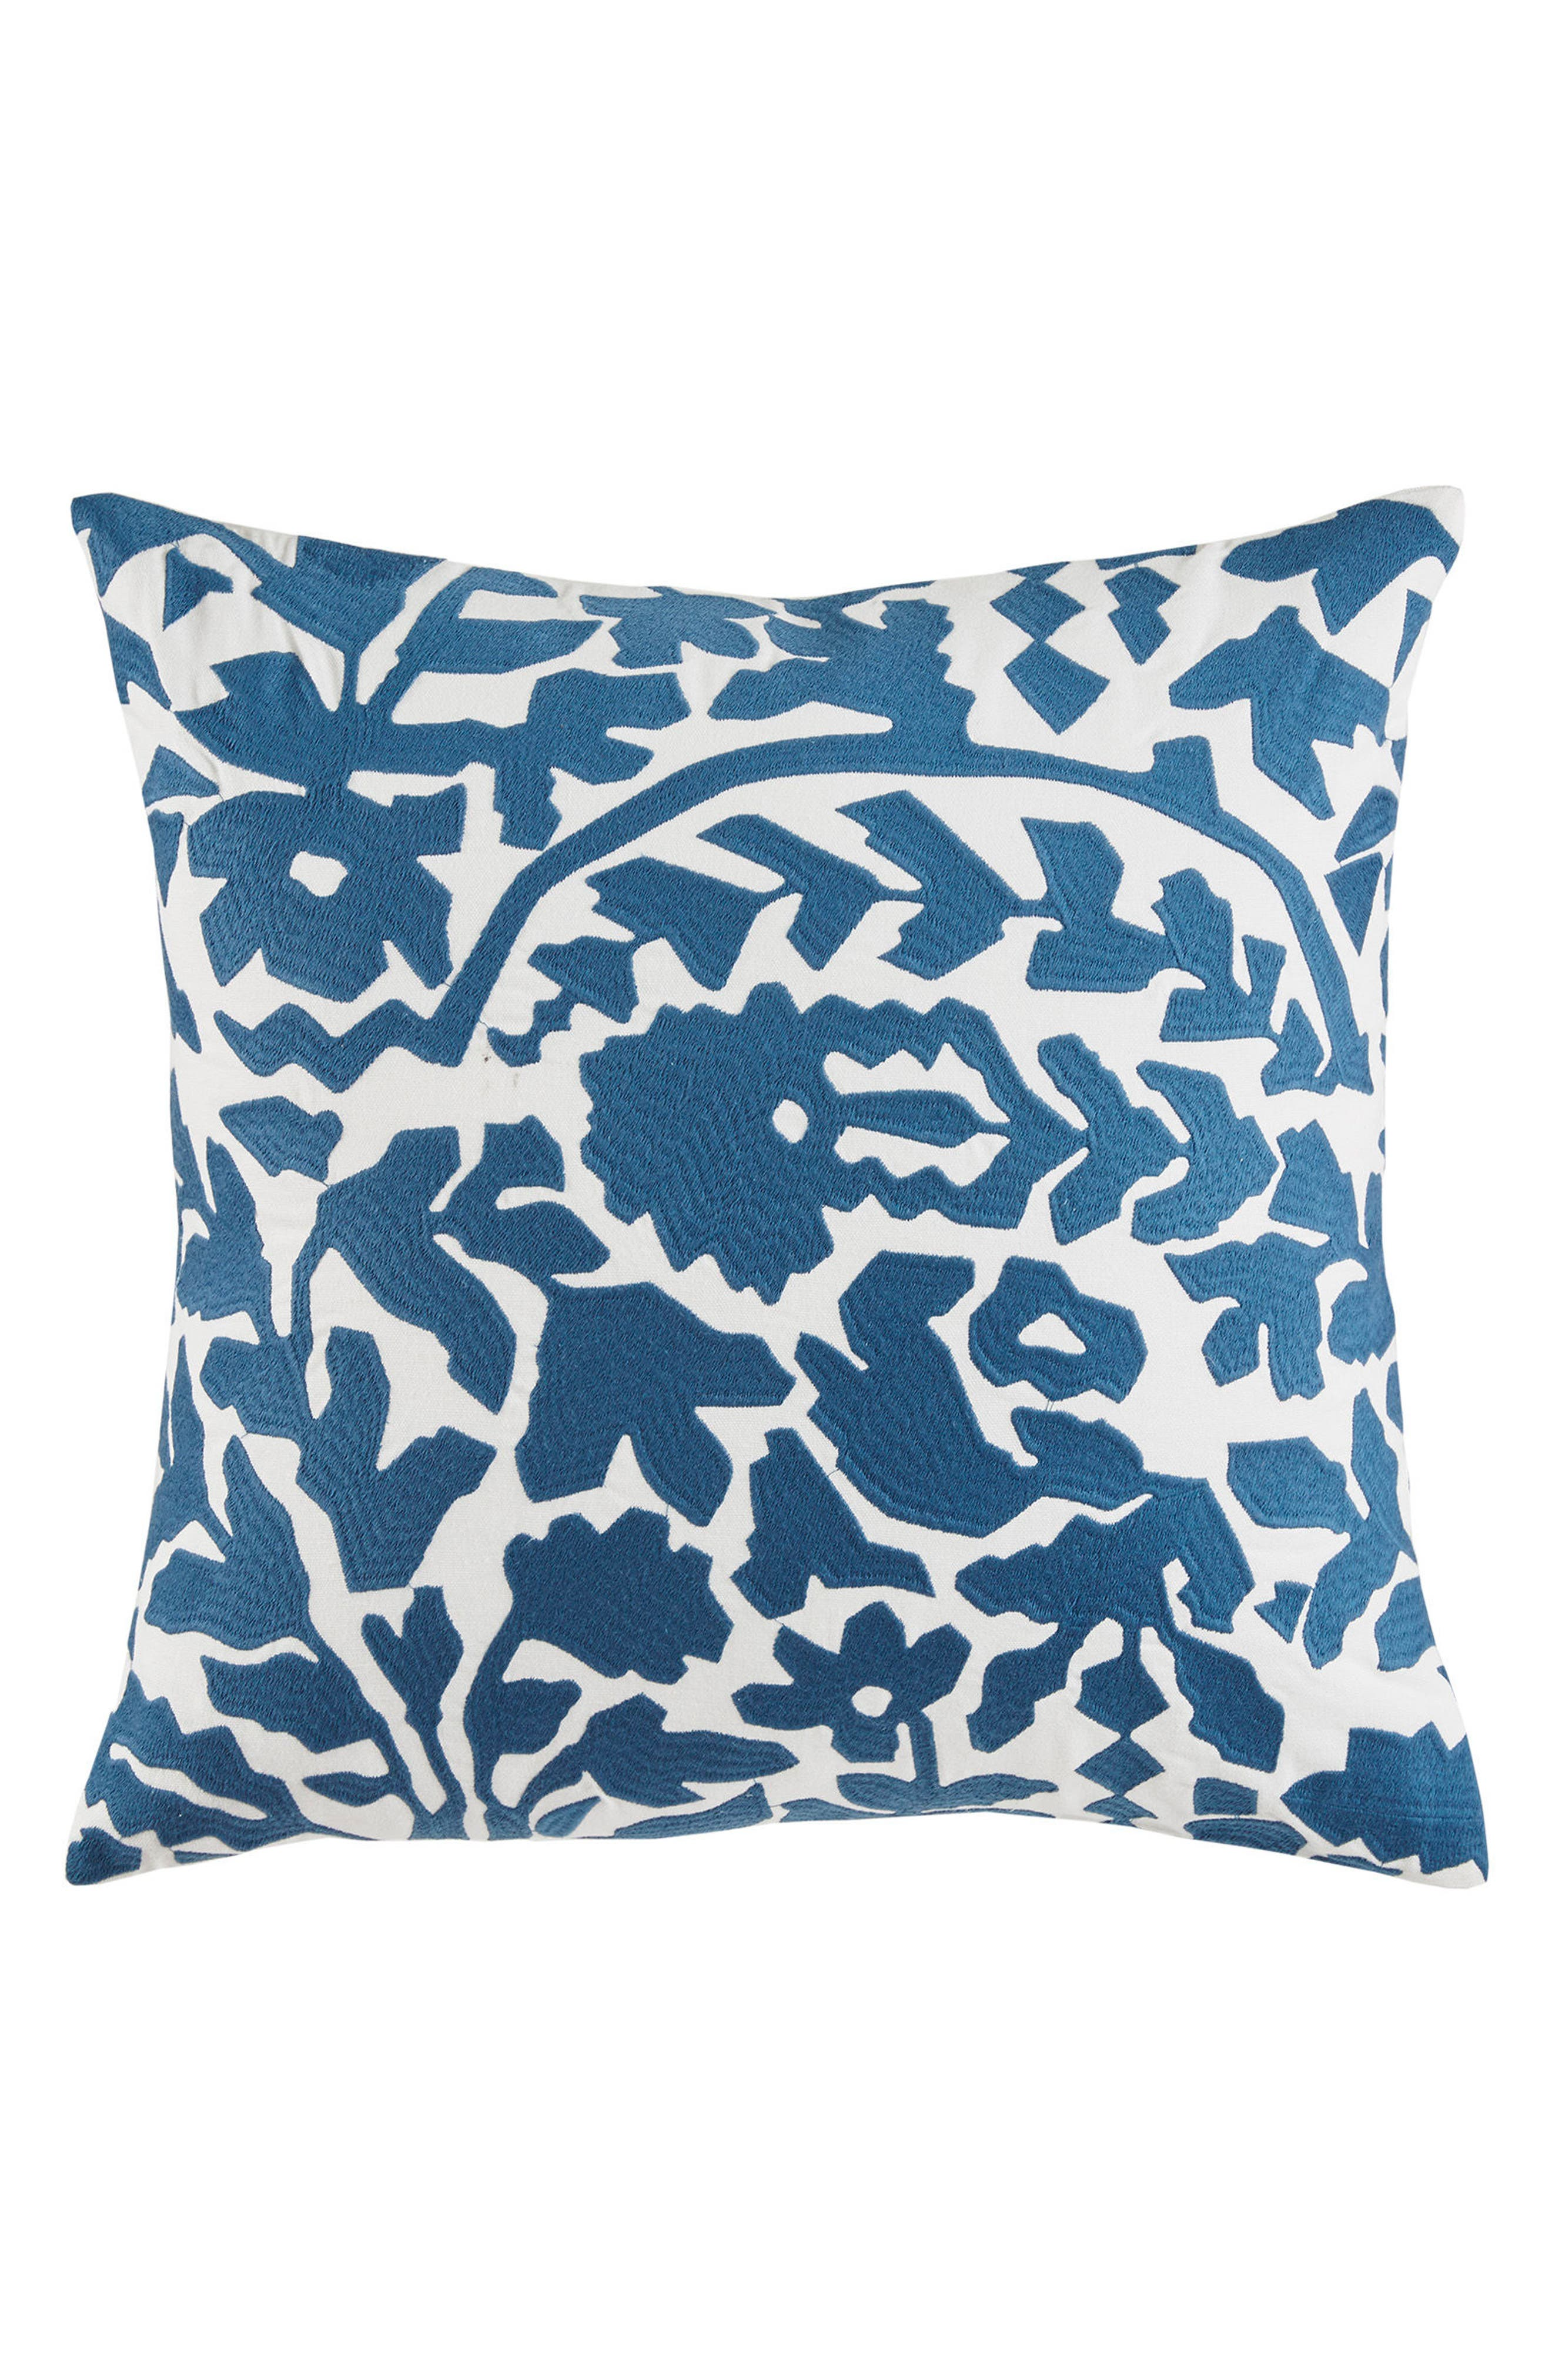 Oaxaca Floral Accent Pillow,                         Main,                         color, Dark Blue